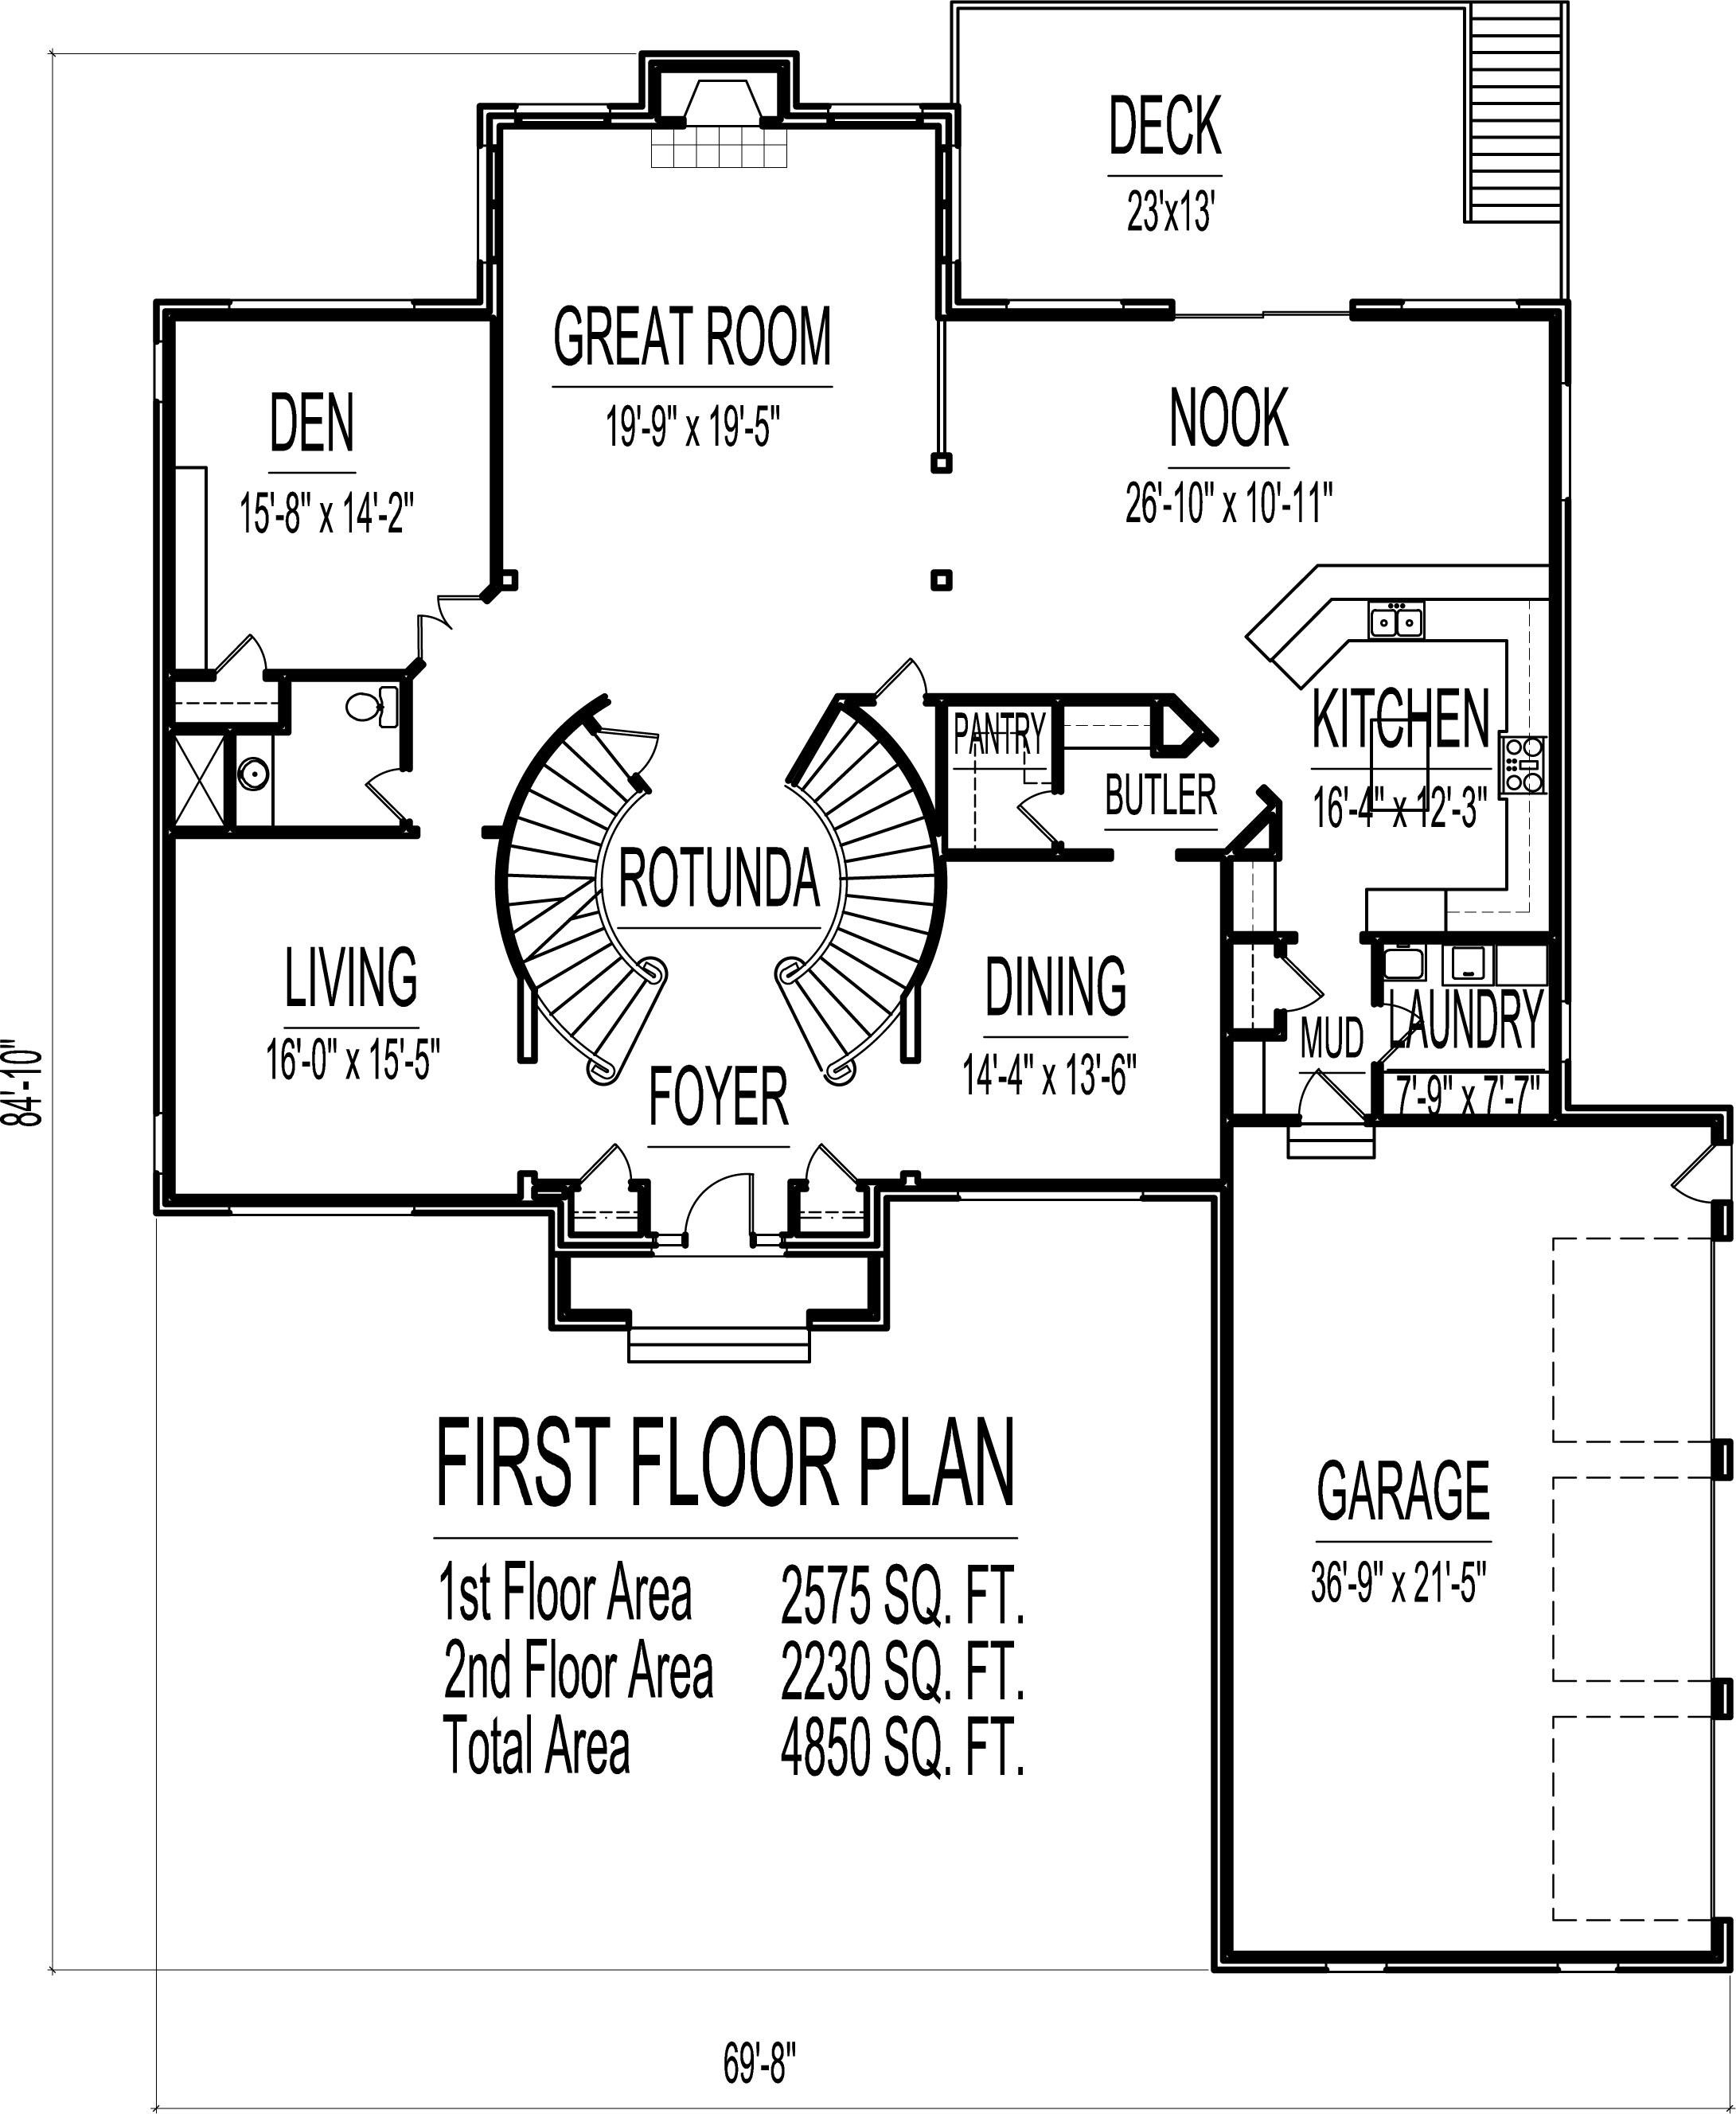 4500 Square Foot House Floor Plans 5 Bedroom 2 Story Double Stairs | Stairs In House Plans | Residential | Upstairs Dream House | Grand Staircase | Sweeping Staircase House | Balcony